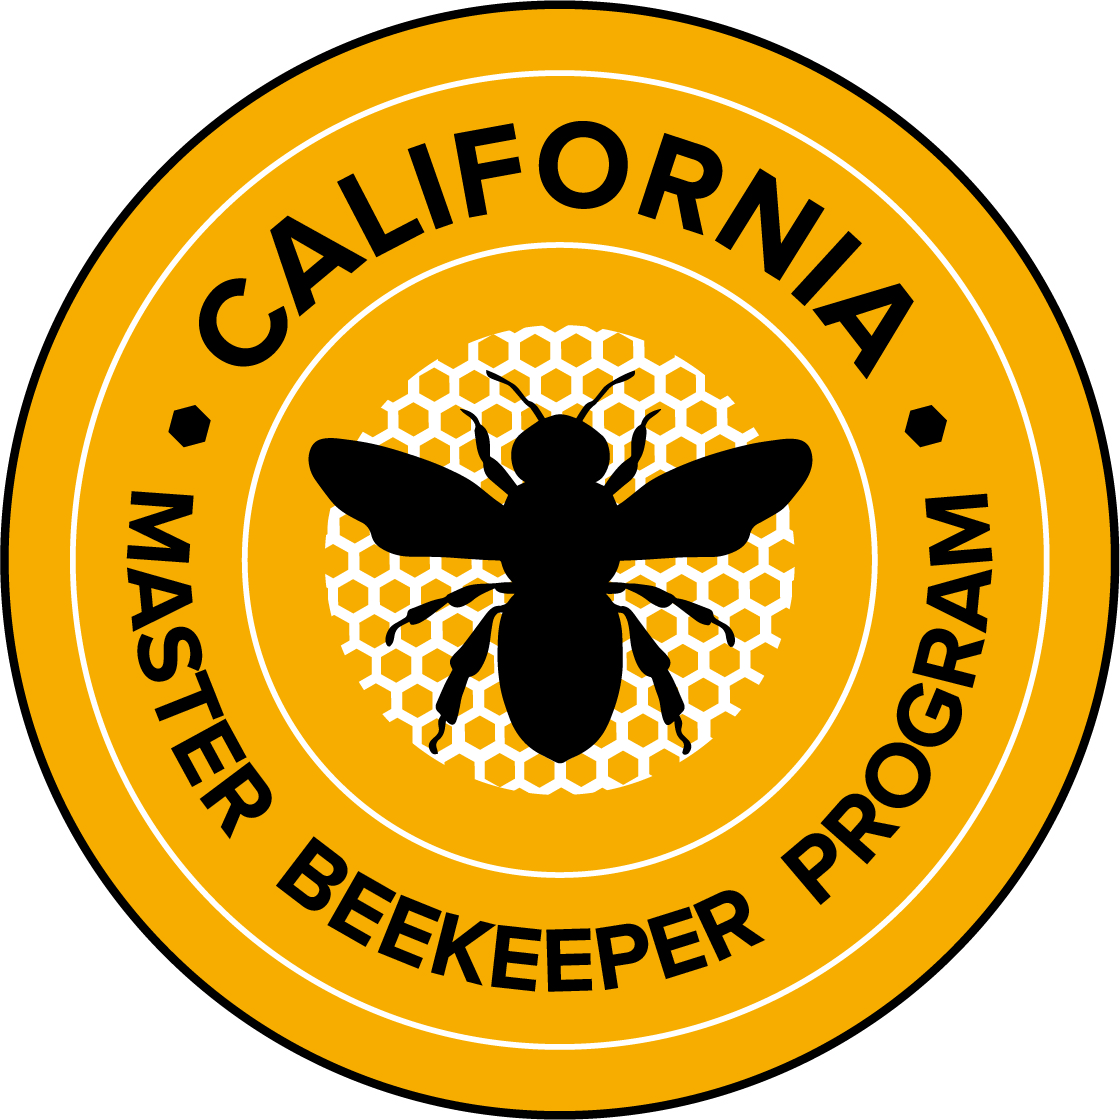 California Master Beekeeper Program